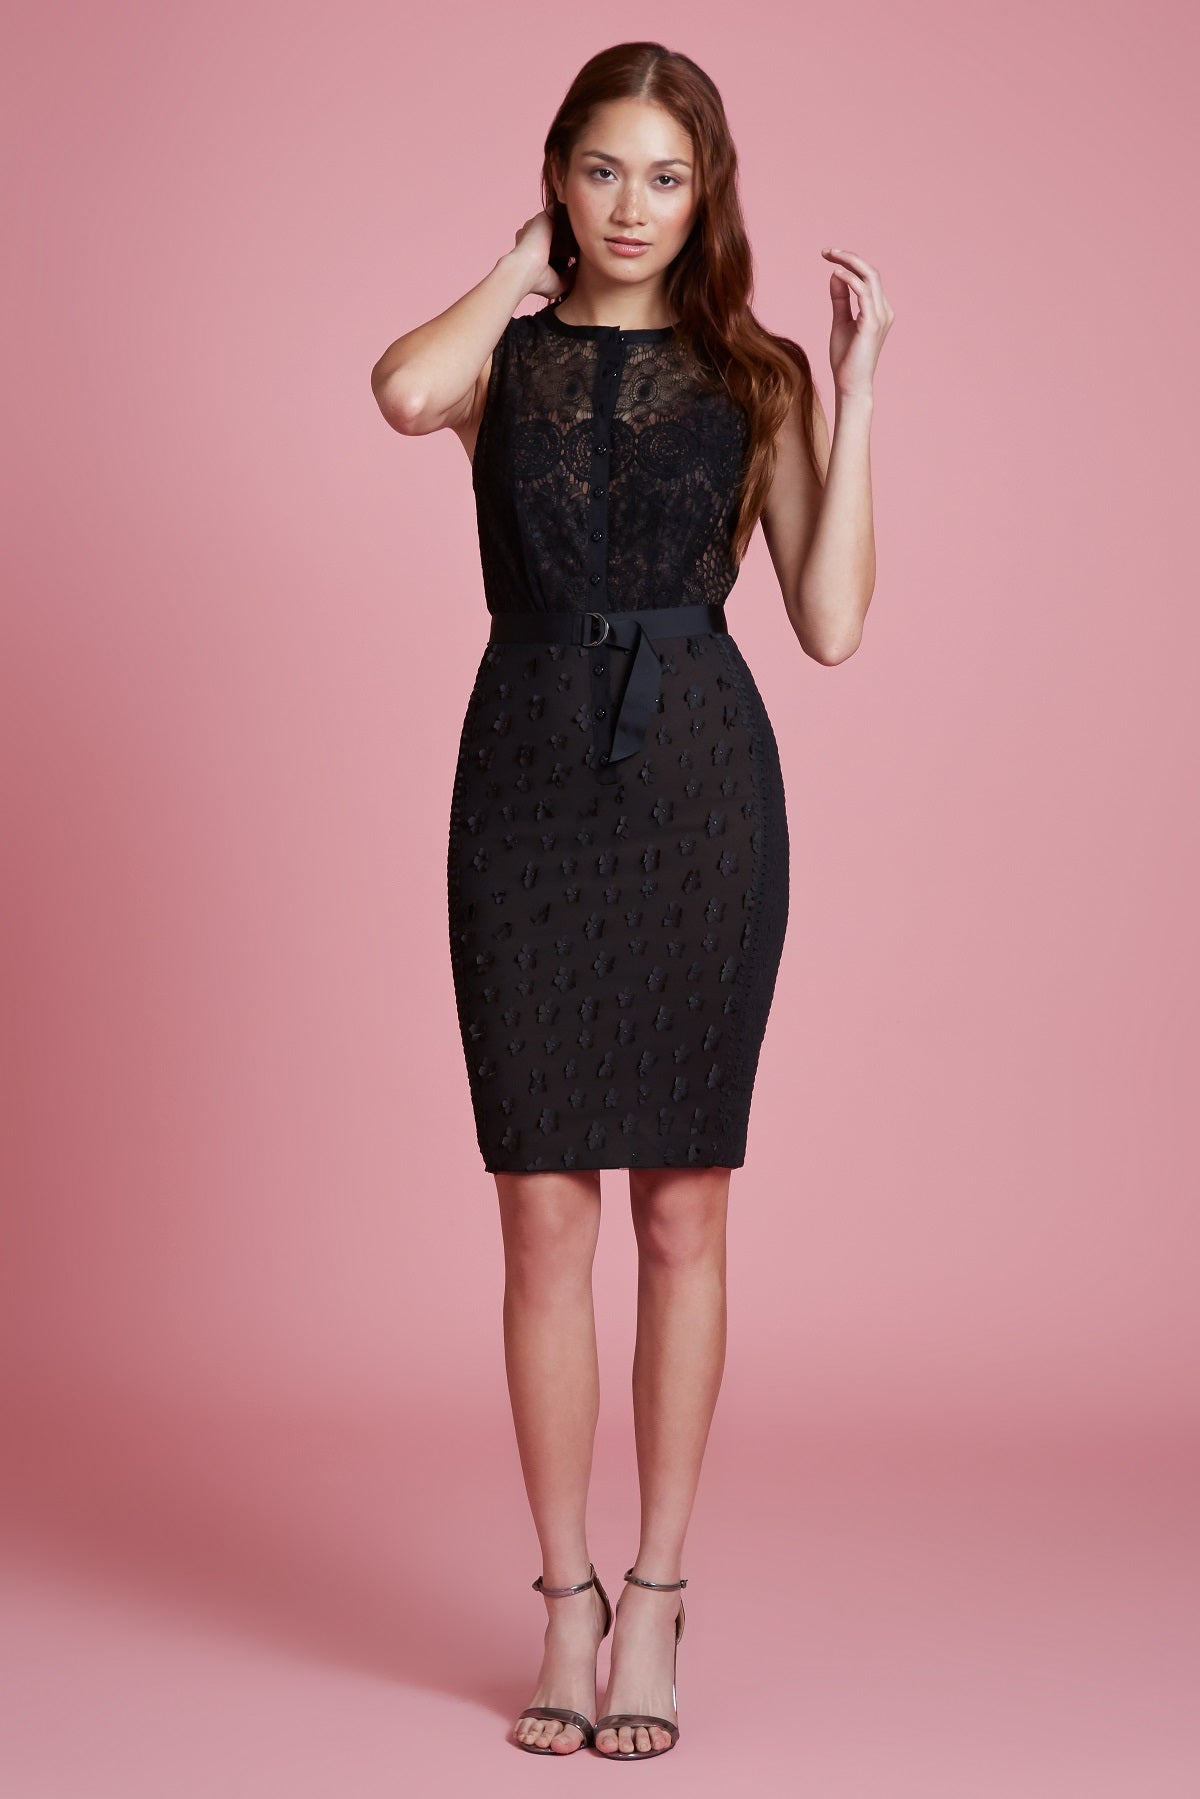 Floral Applique Lace Sheath - Final Sale